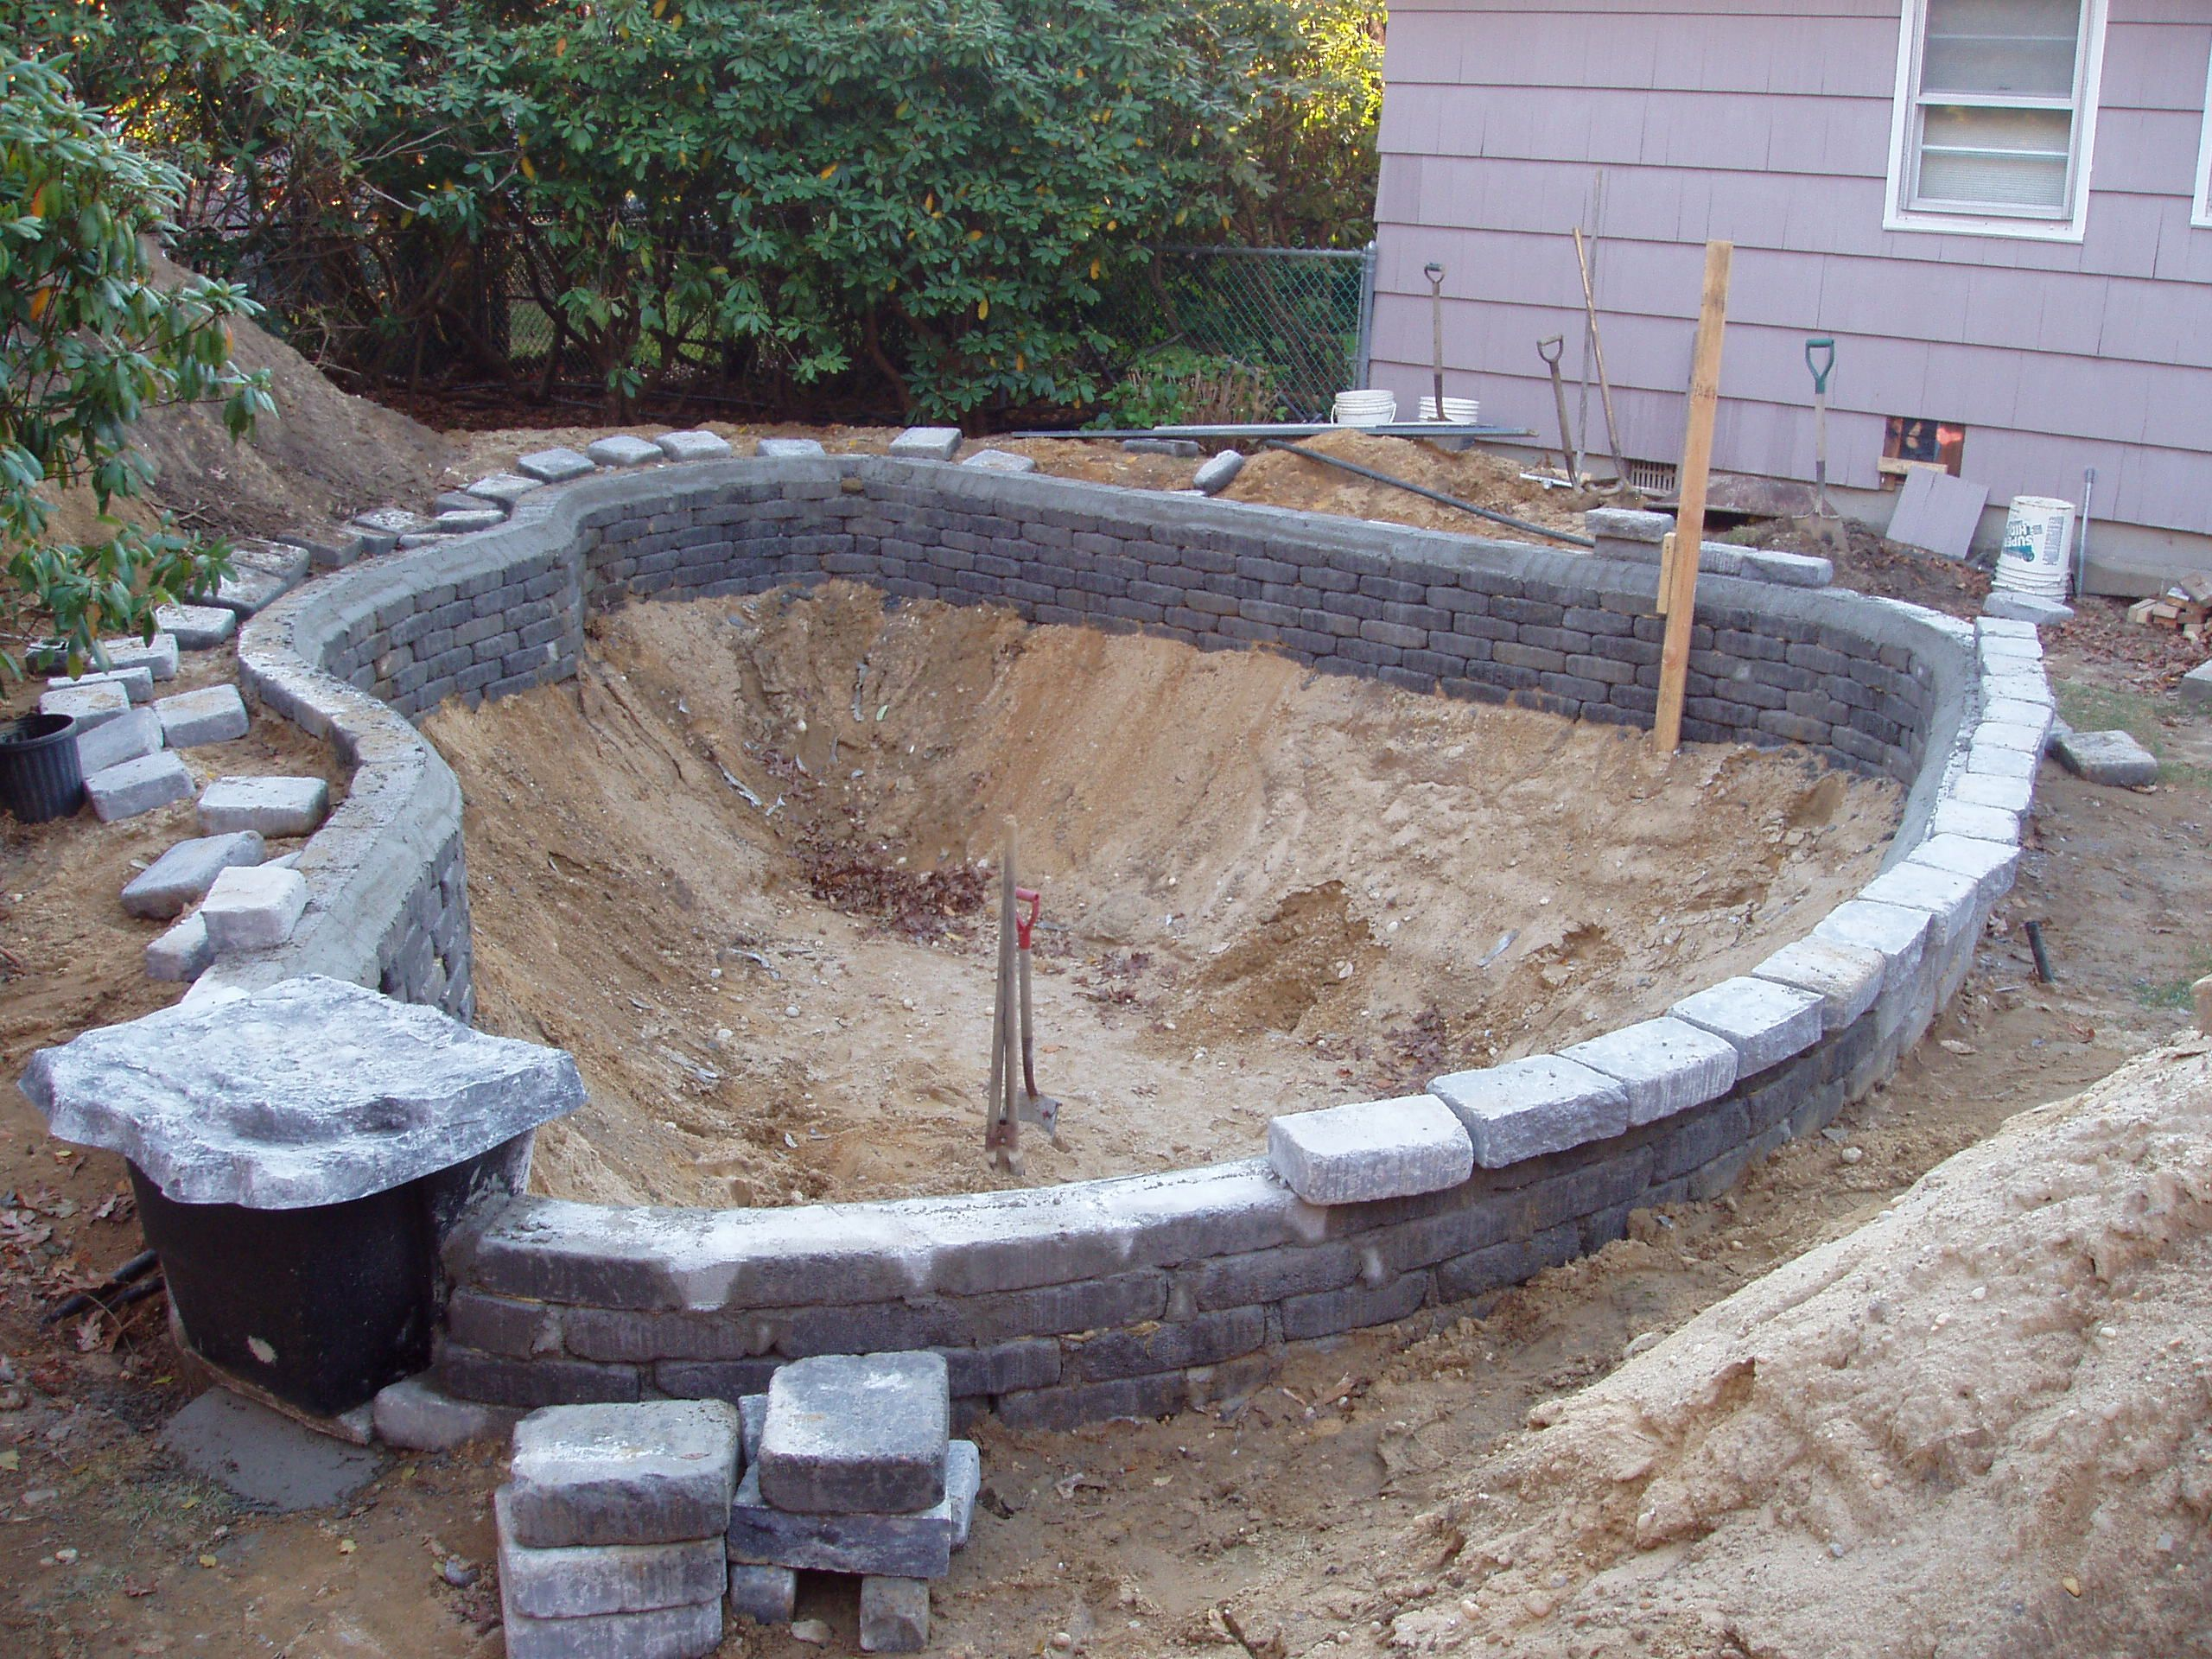 Pond design and construction google search aquaponics for Making a fish pond